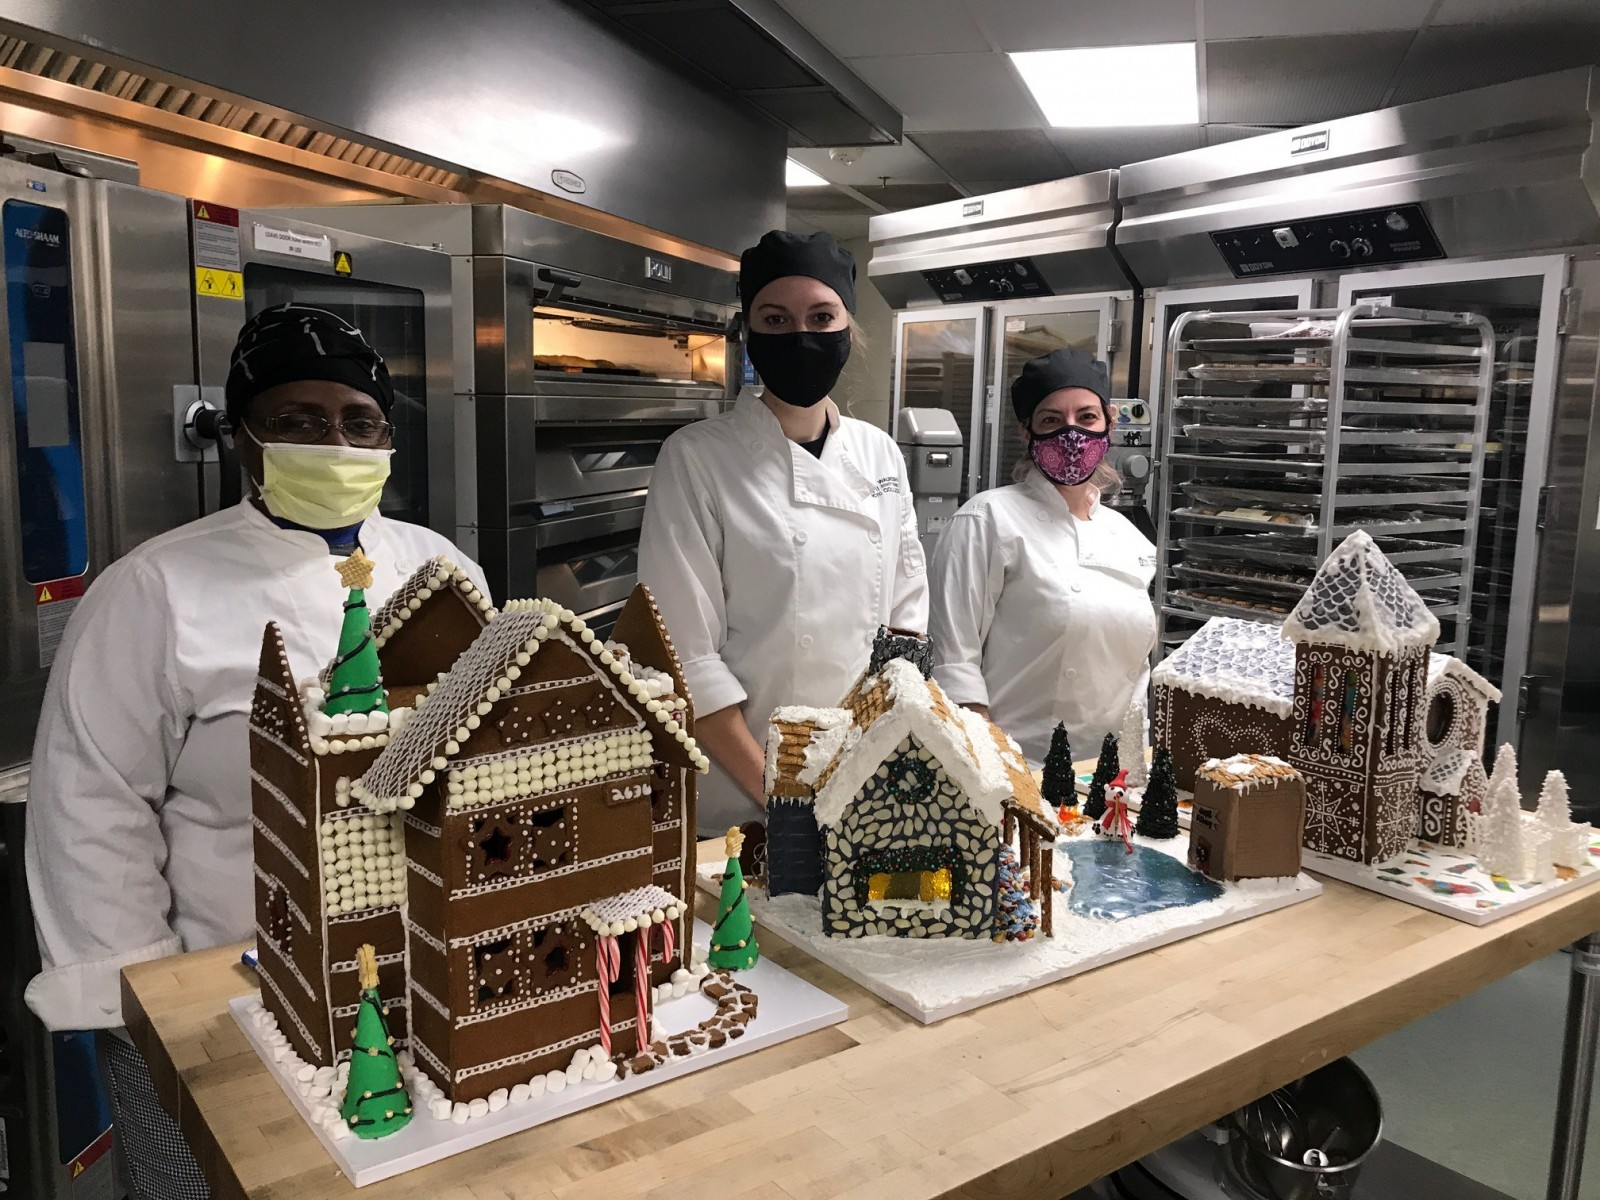 Gingerbread decorating group - other houses